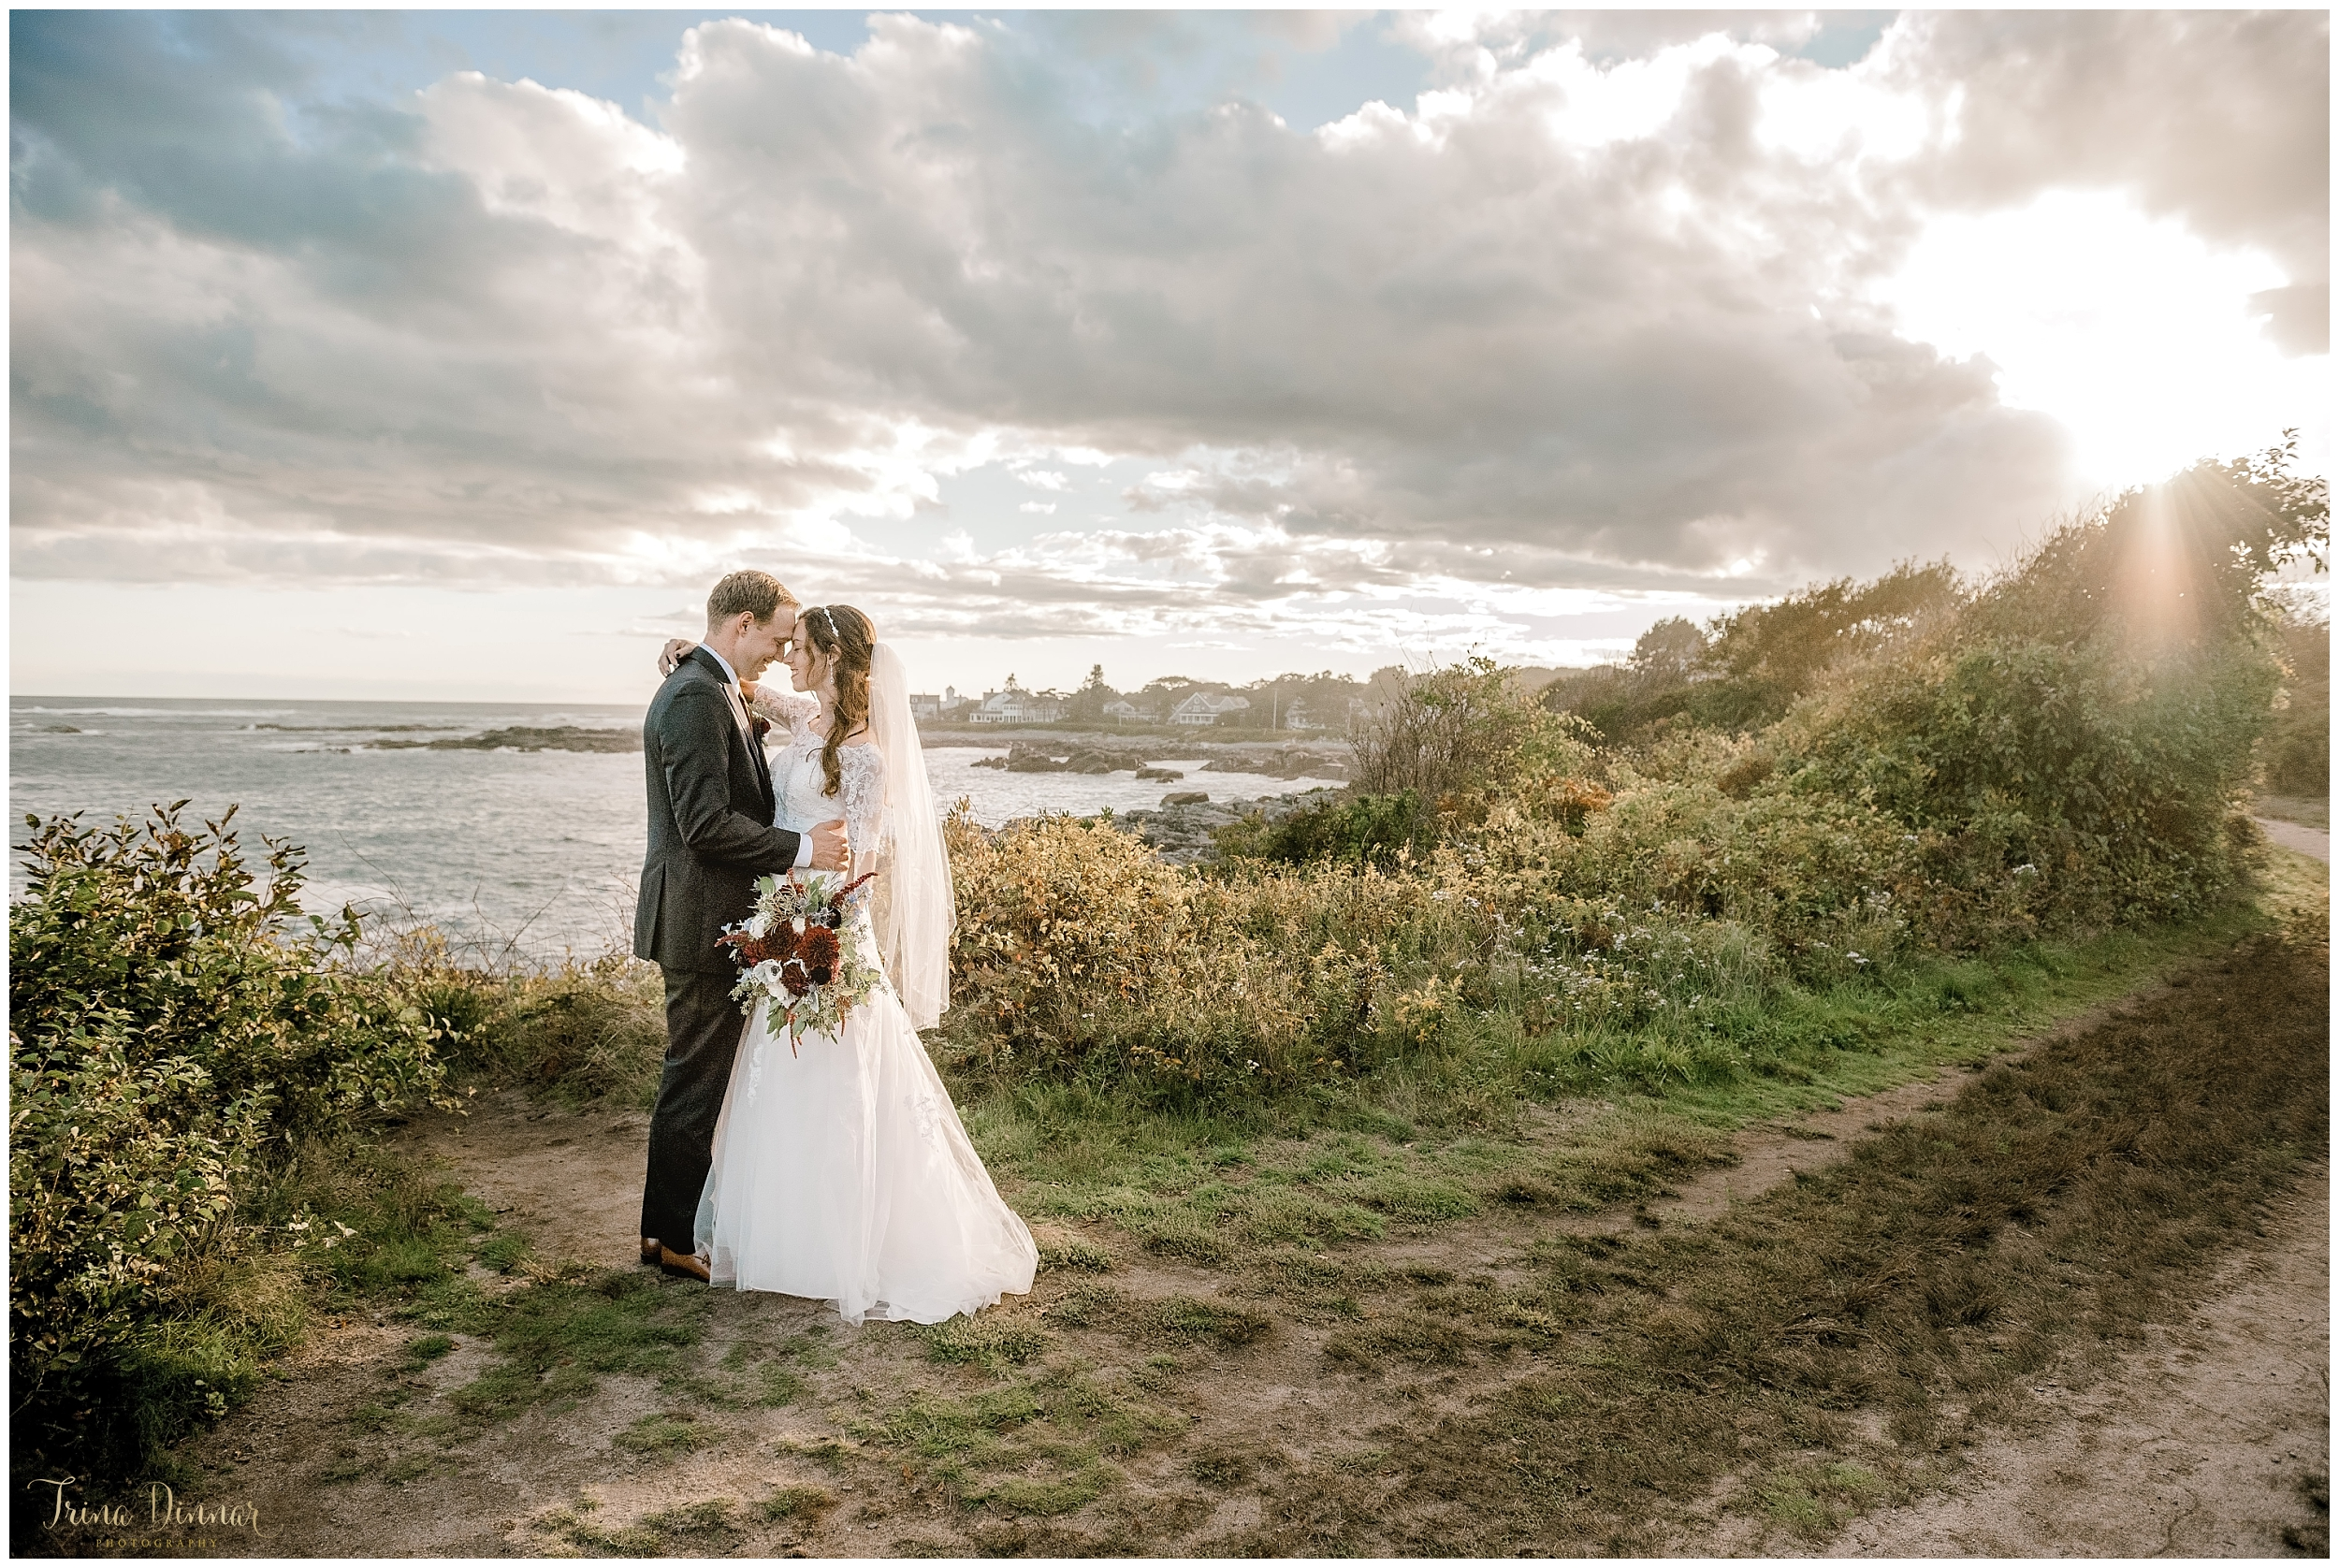 Stunning Maine Sunset Wedding Portrait Photography by Trina Dinnar - 2019 Best of Weddings Winner by The Knot.